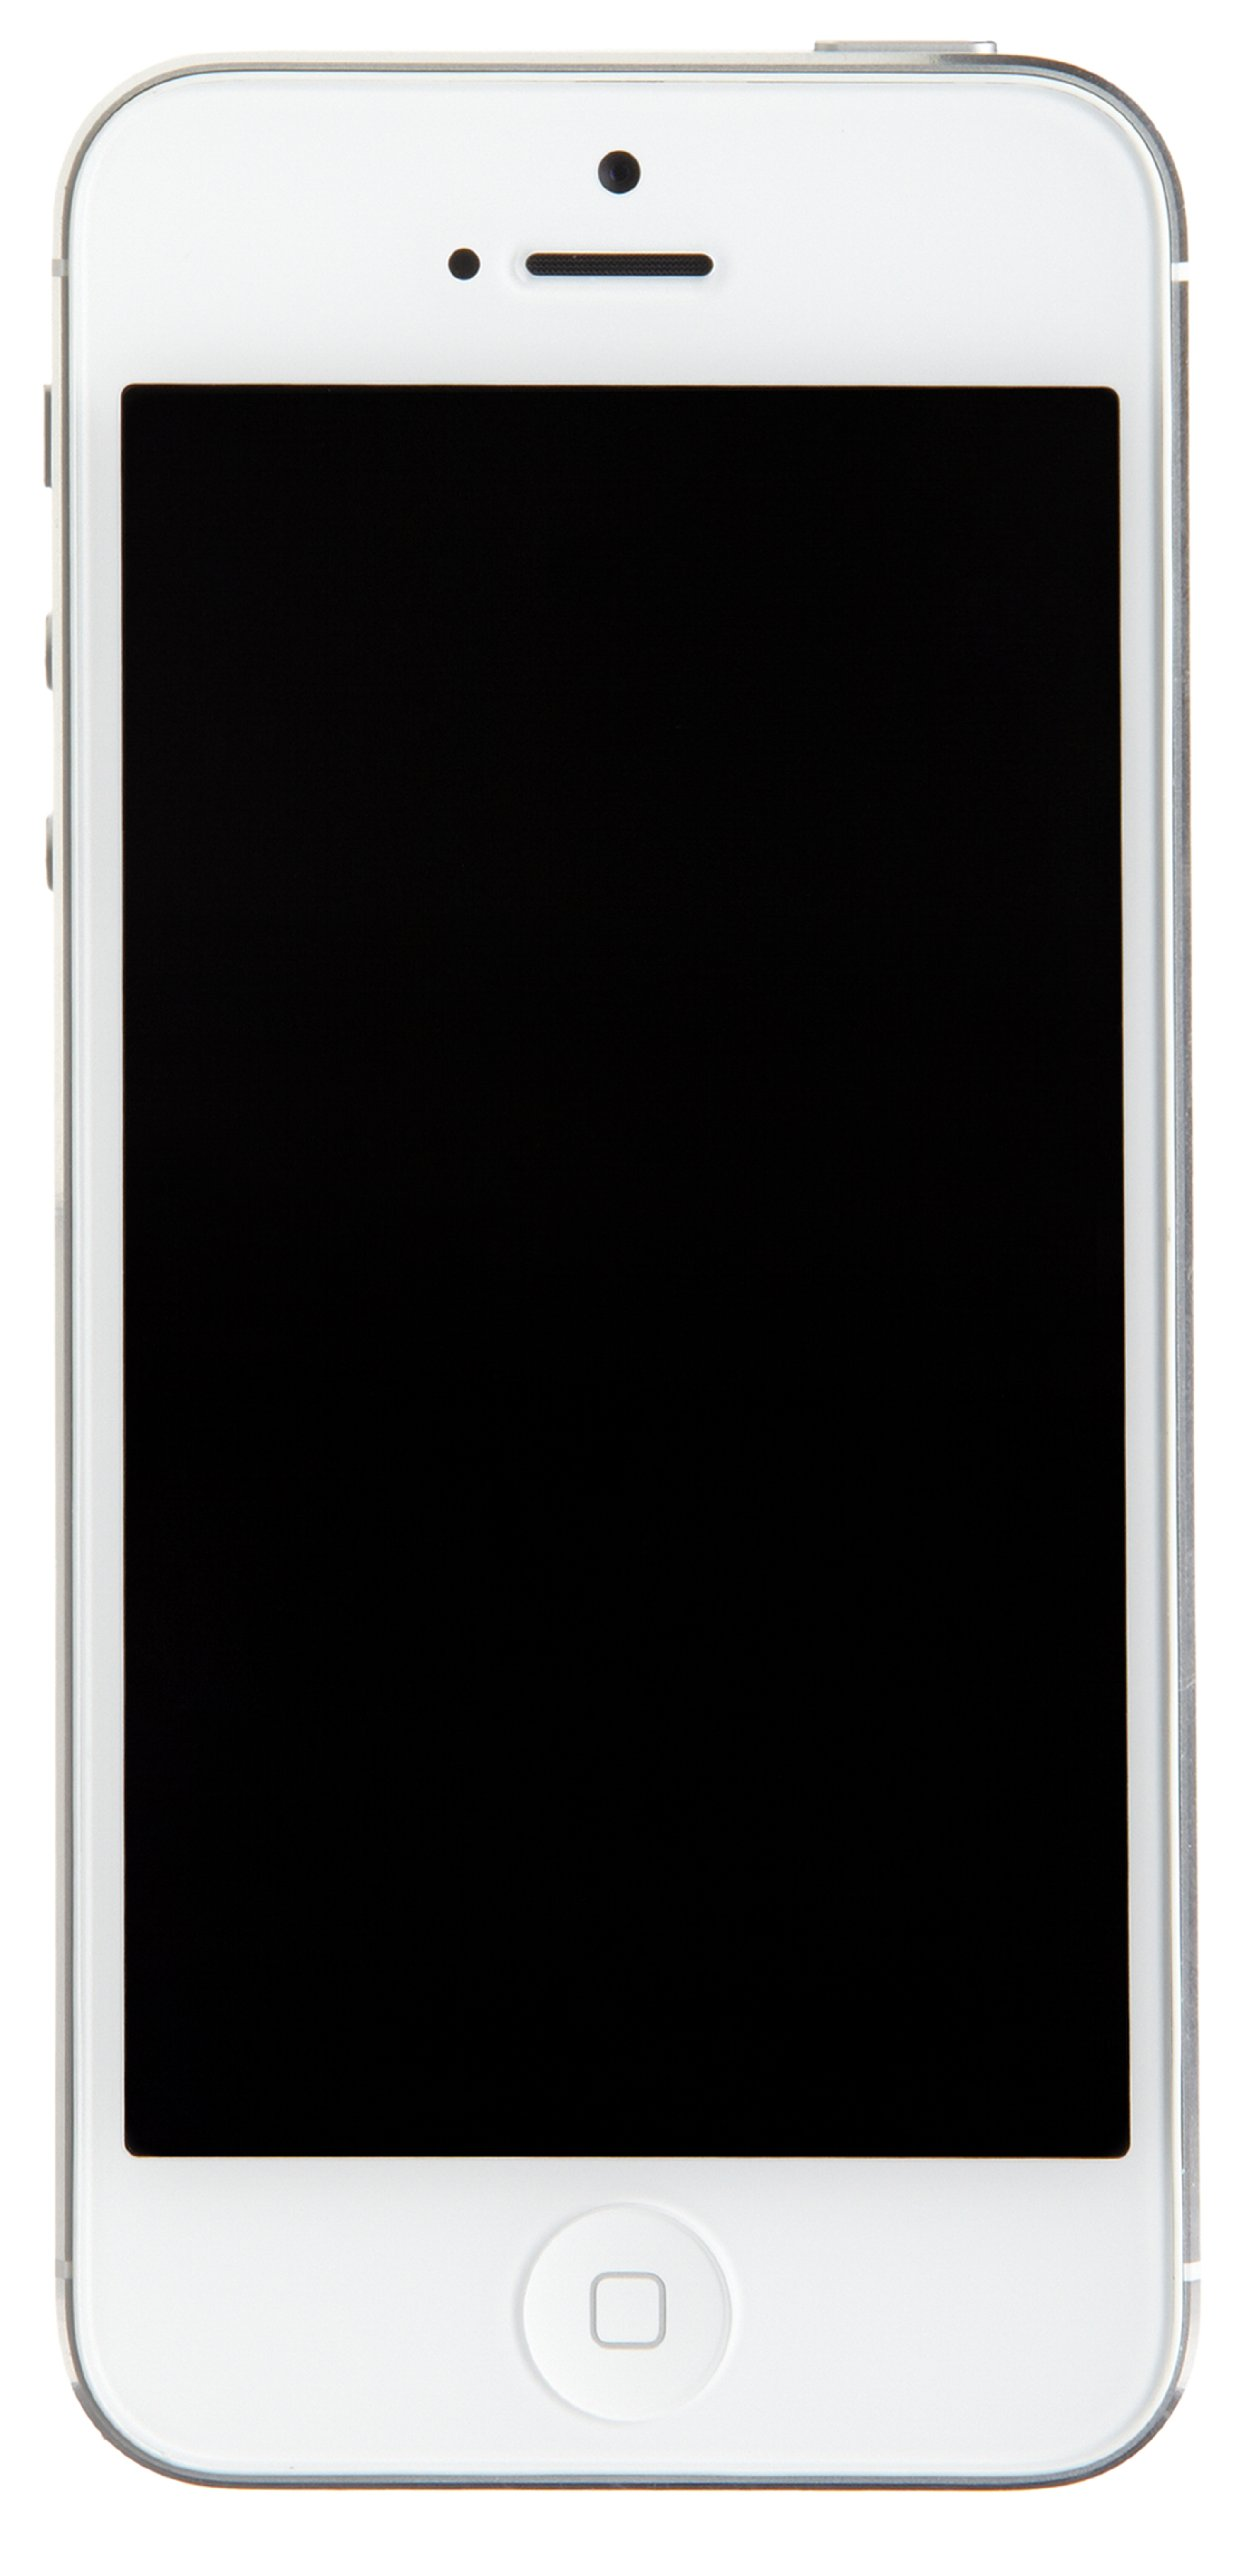 Apple iPhone 5 AT&T Cellphone, 16GB, White